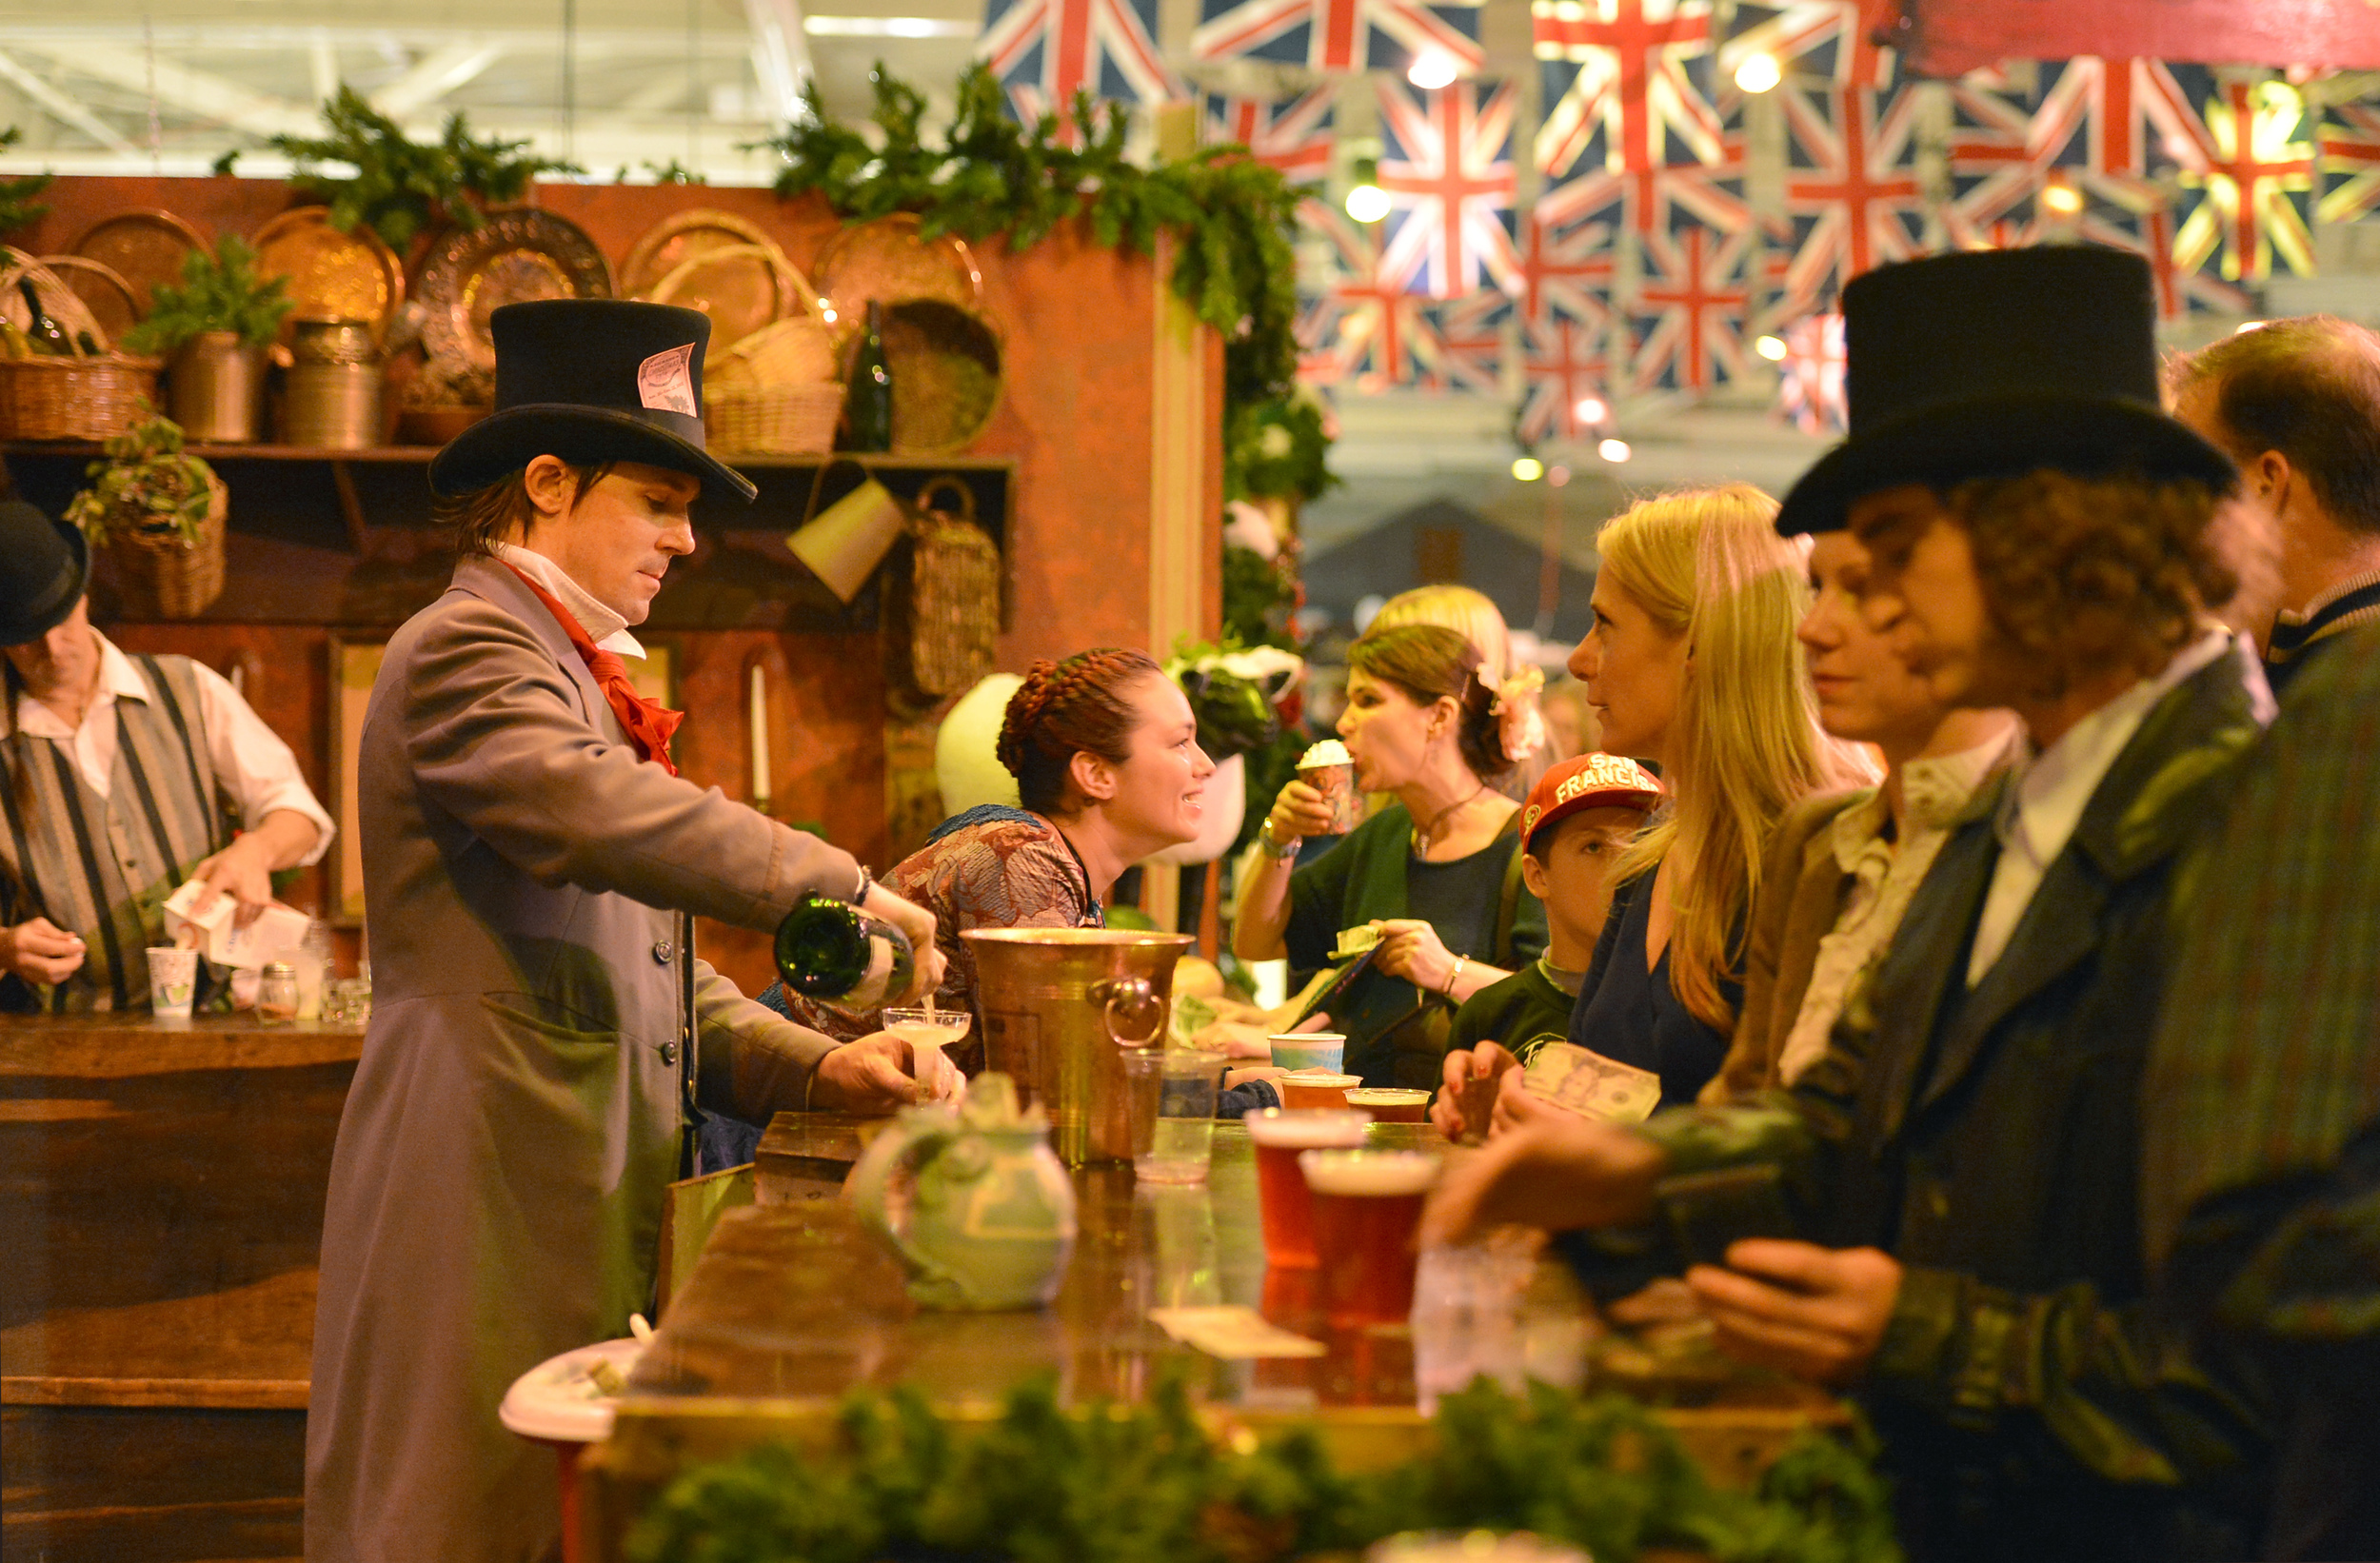 Four authentic English pubs - and the Bohemian Absinthe Bar - serve up hearty Christmas cheer at the Great Dickens Christmas Fair.    Photo credit: Rich Yee